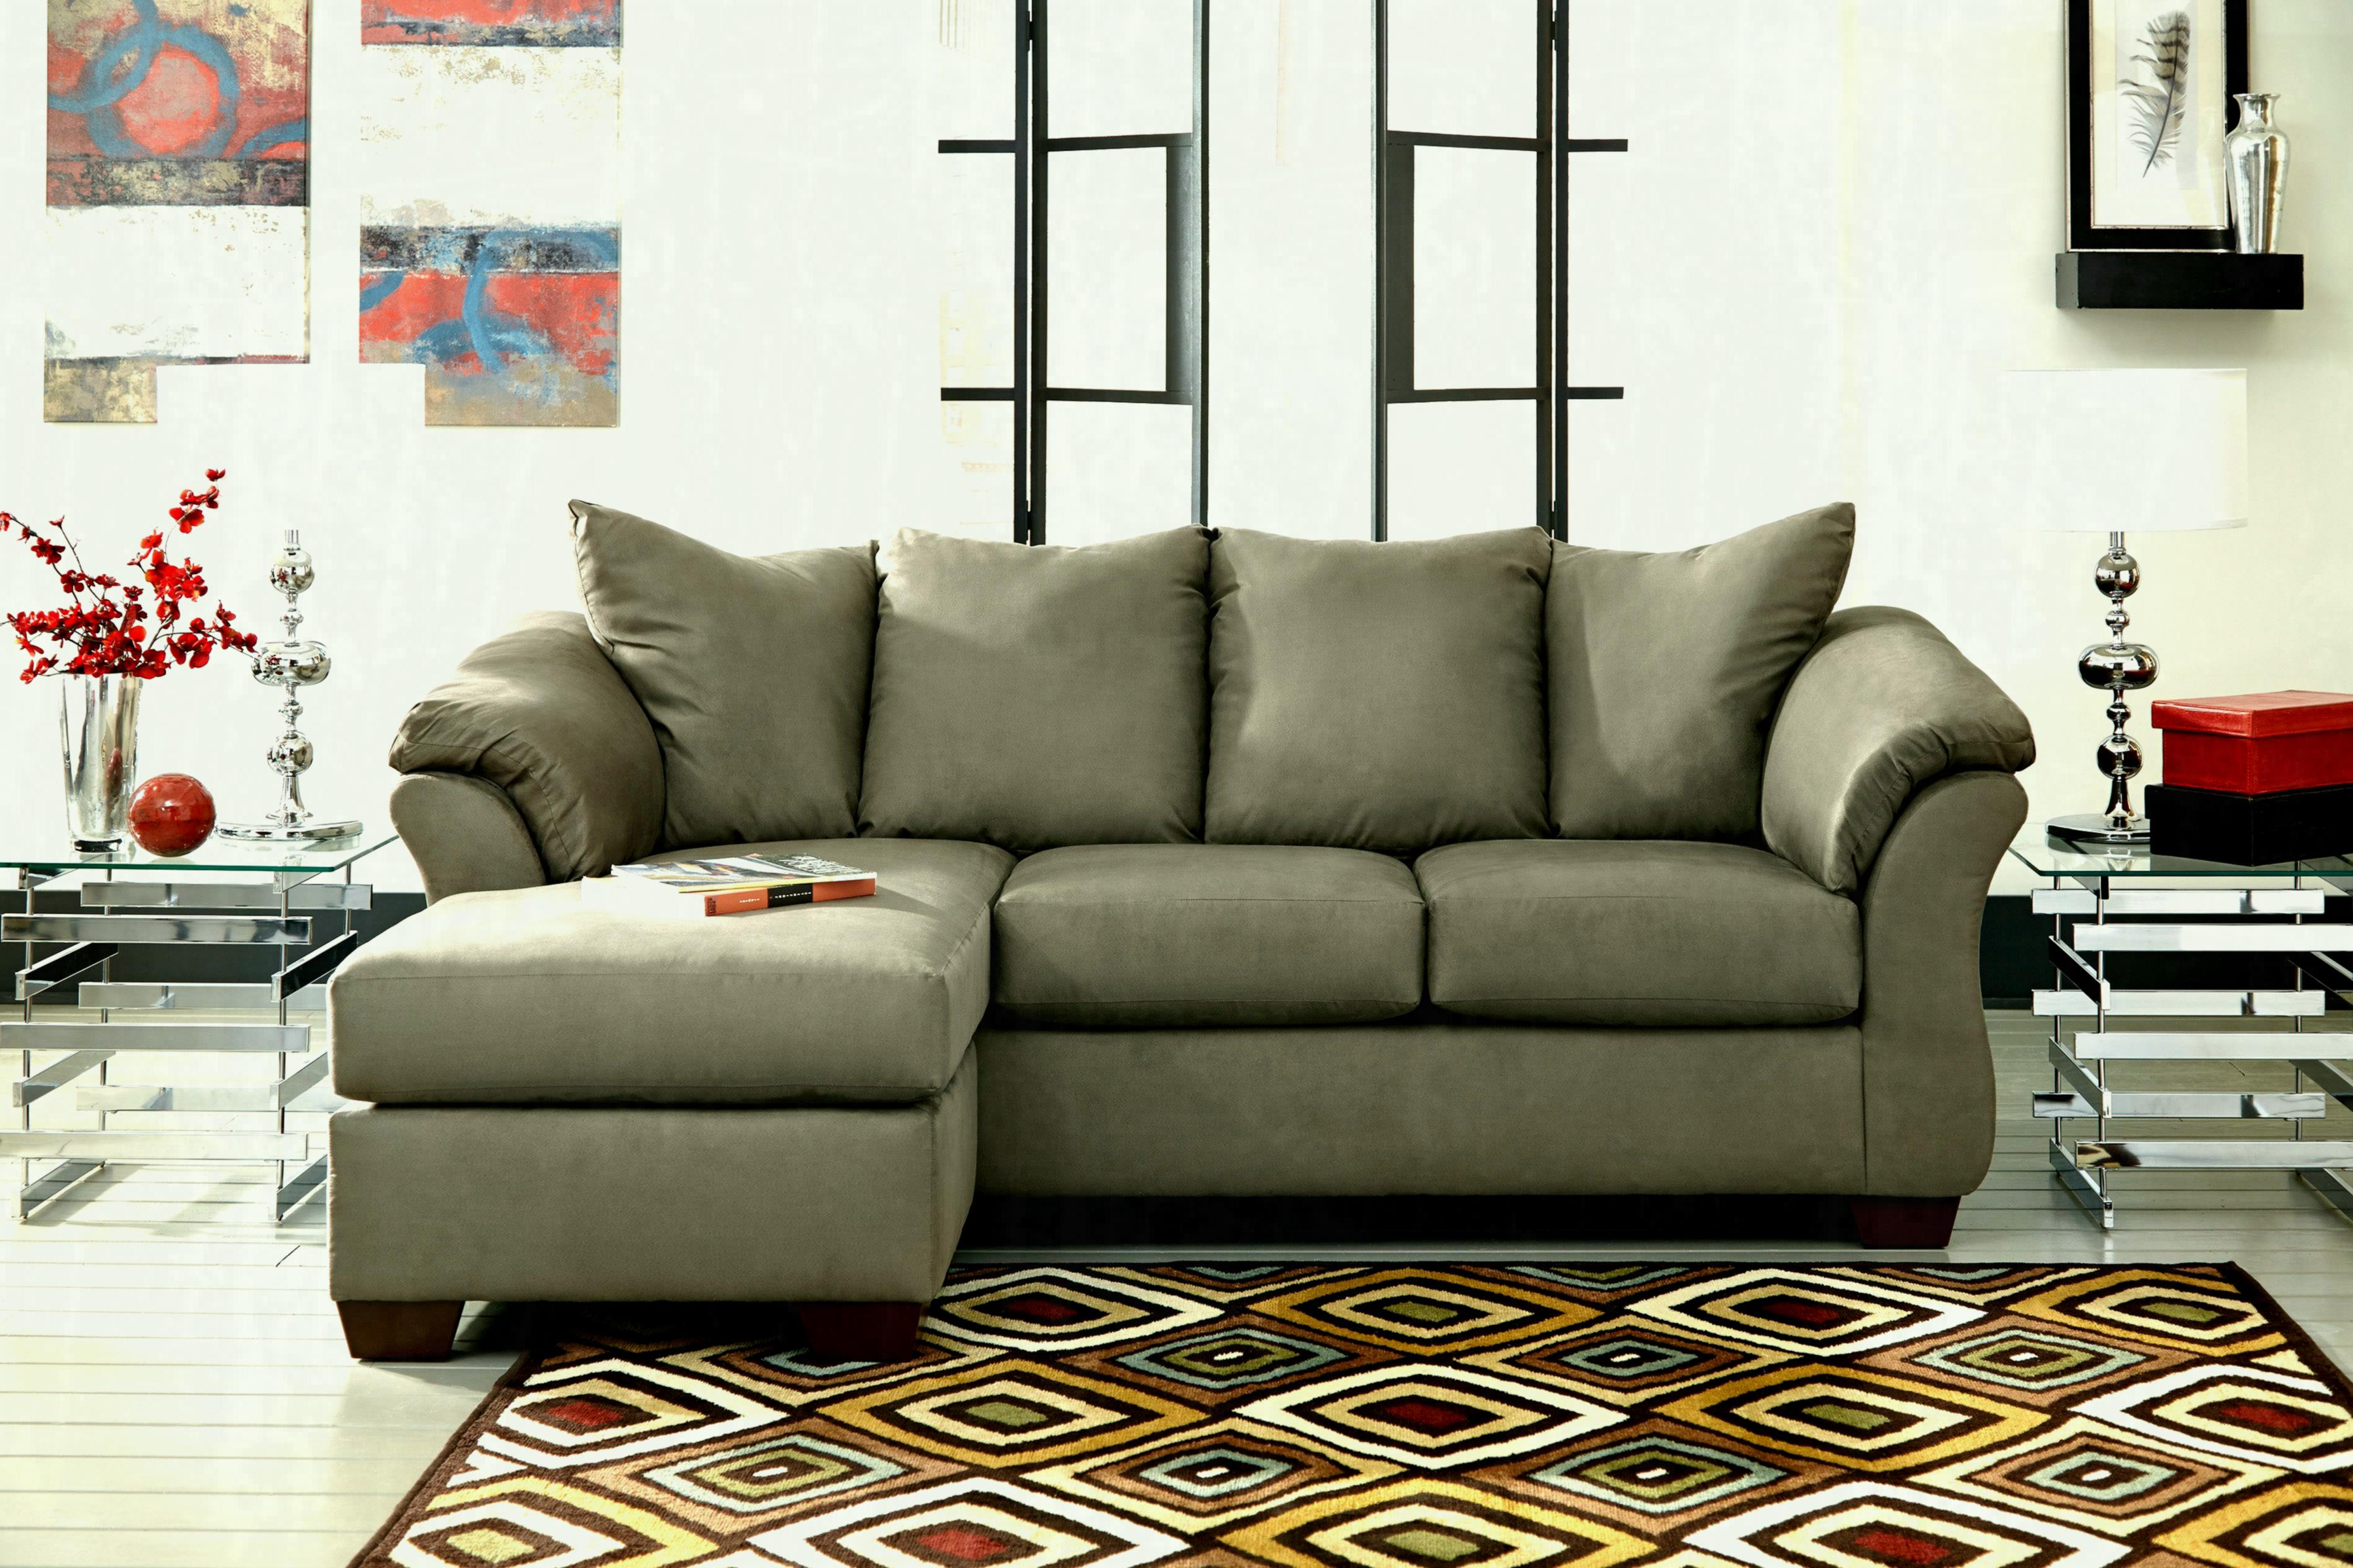 2019 Mcculla Sofa Sectionals With Reversible Chaise Pertaining To Display Product Reviews For Mcculla Sofa With Reversible Chaise (View 2 of 20)